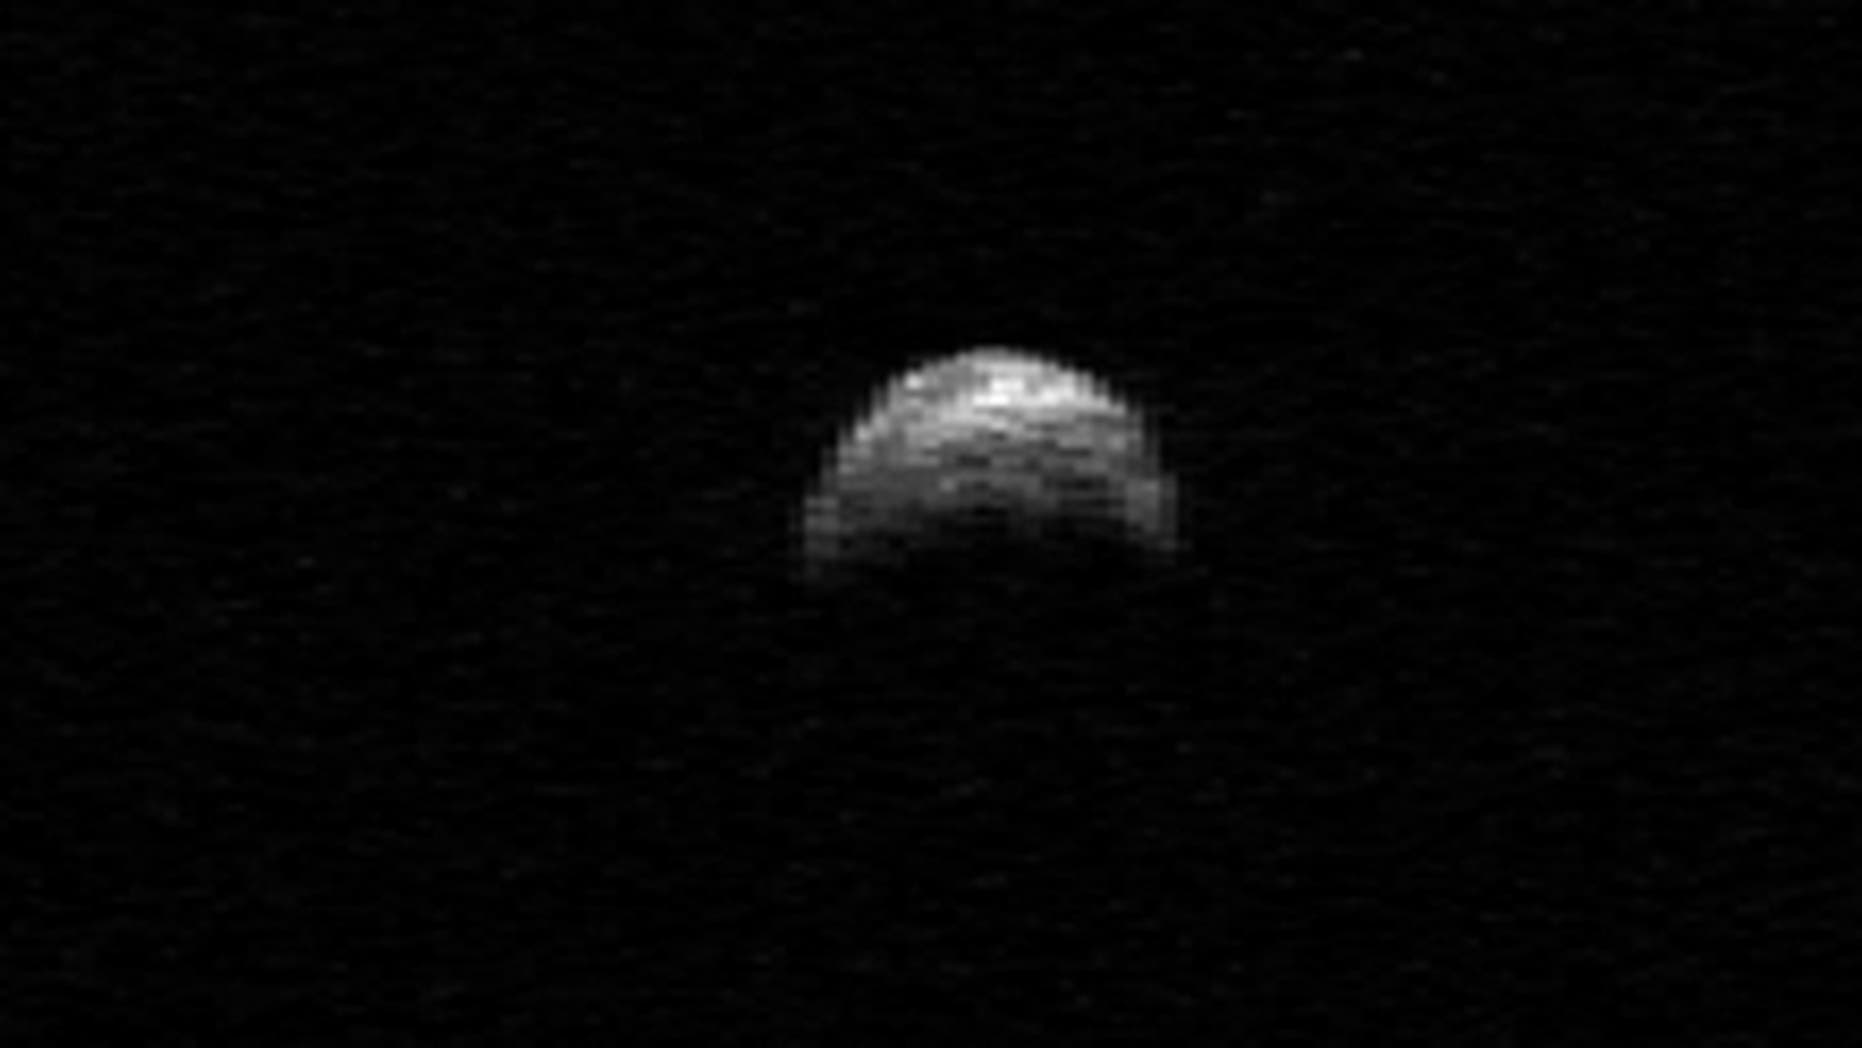 In April 2010, this radar image of the near-Earth asteroid 2005 YU55 was taken by the Arecibo radio telescope in Puerto Rico. On Nov. 8, 2011, this large space rock zips by Earth again and will be surveyed by radar, visual and infrared equipment.